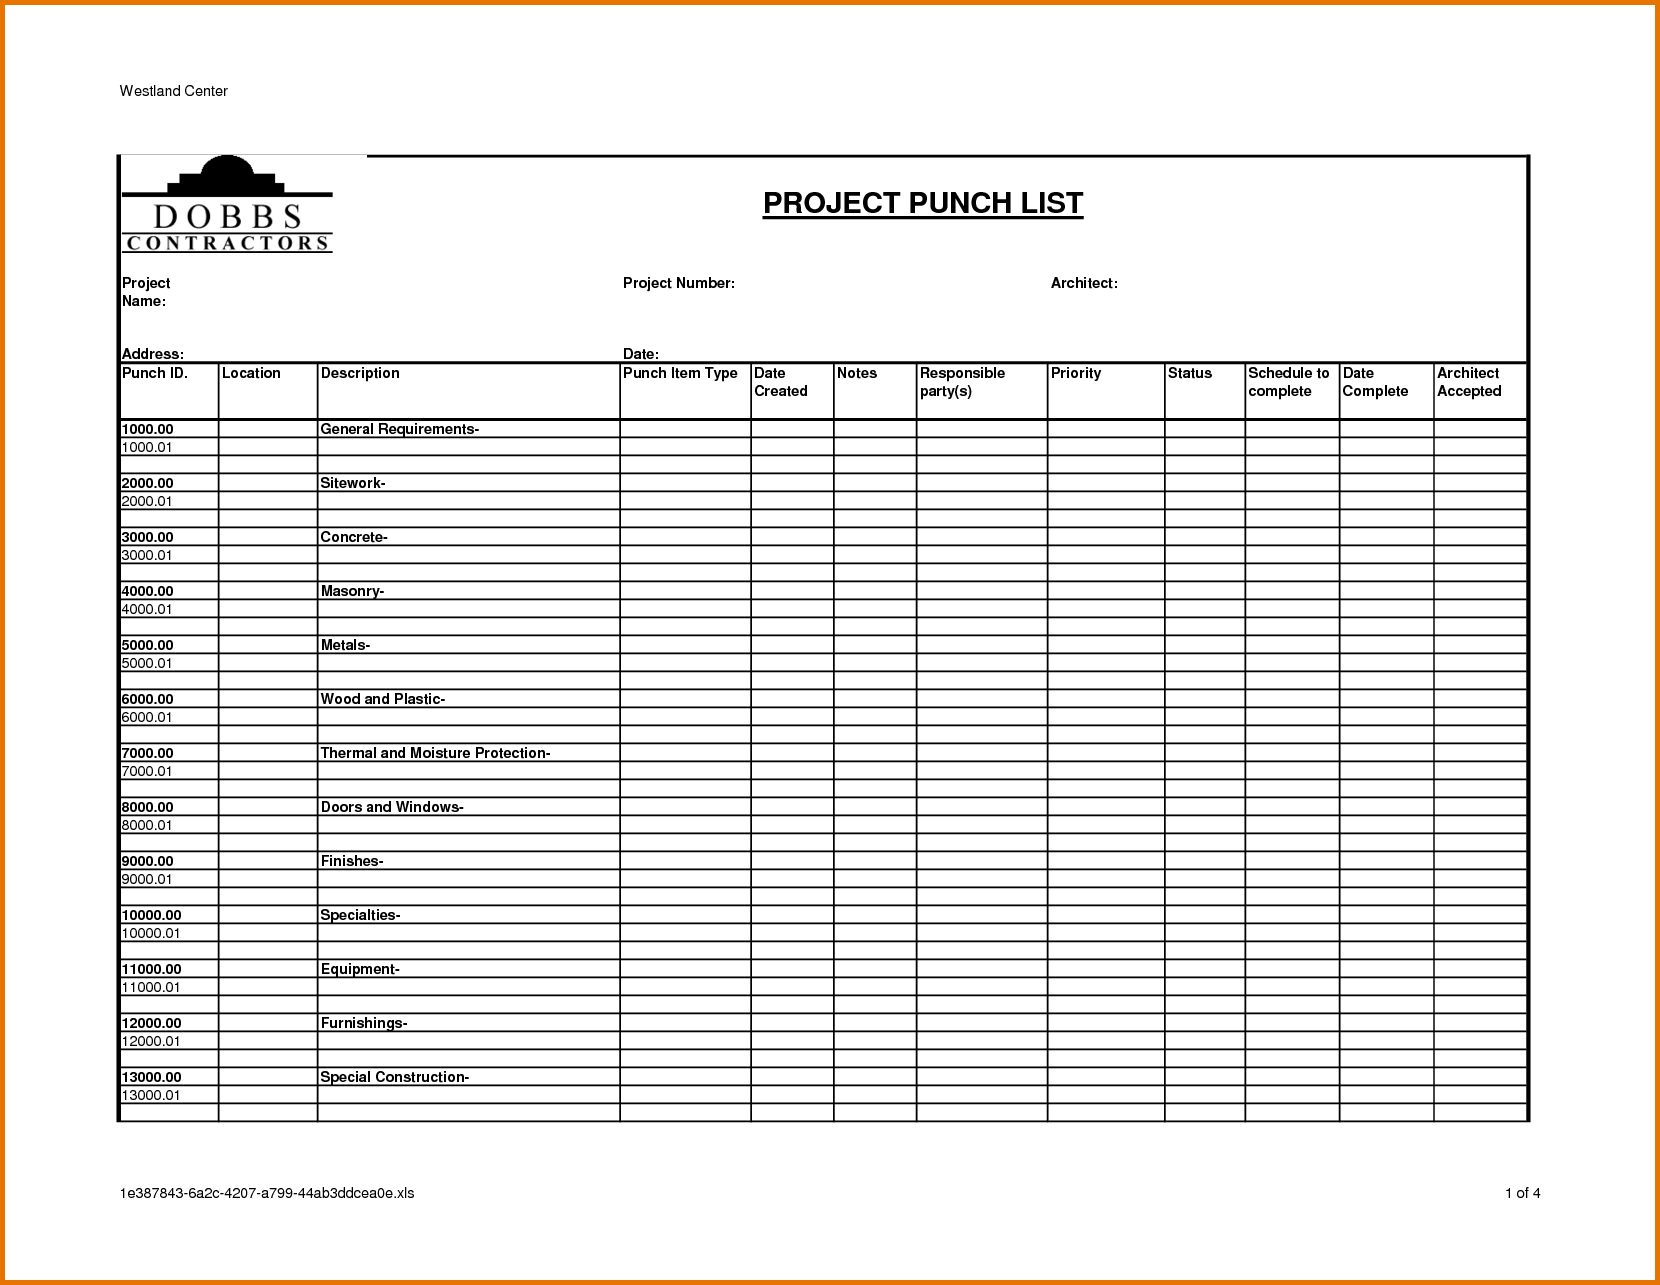 architectural punch list template   Manqal.hellenes.co